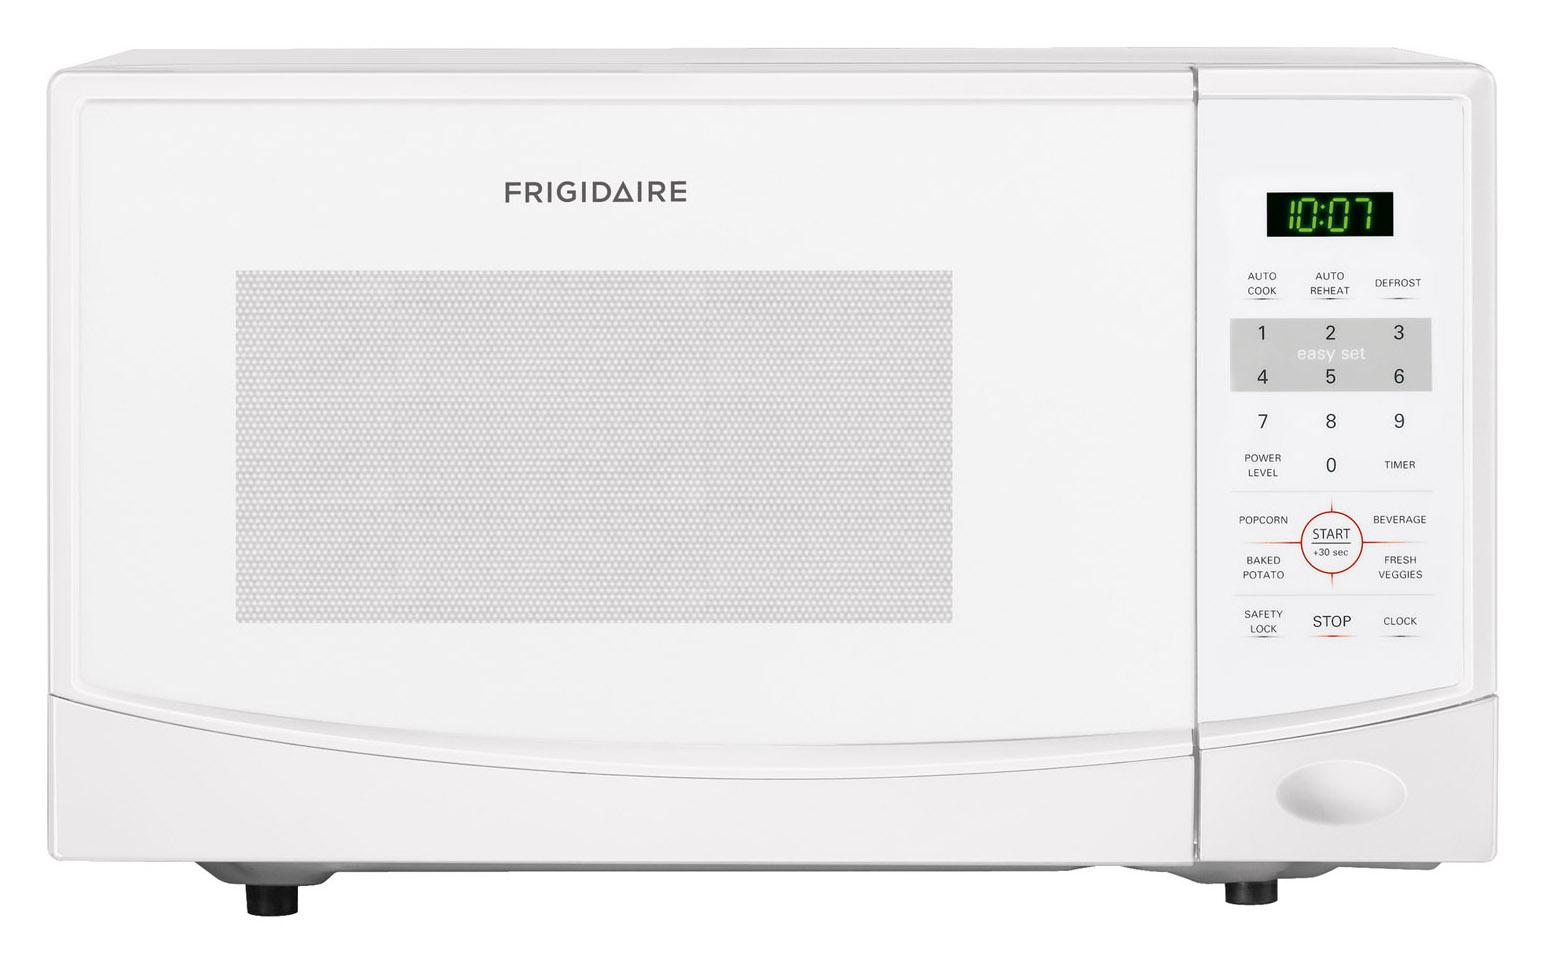 Frigidaire Microwaves 0.9 Cu. Ft. Countertop Microwave - Item Number: FFCM0934LW